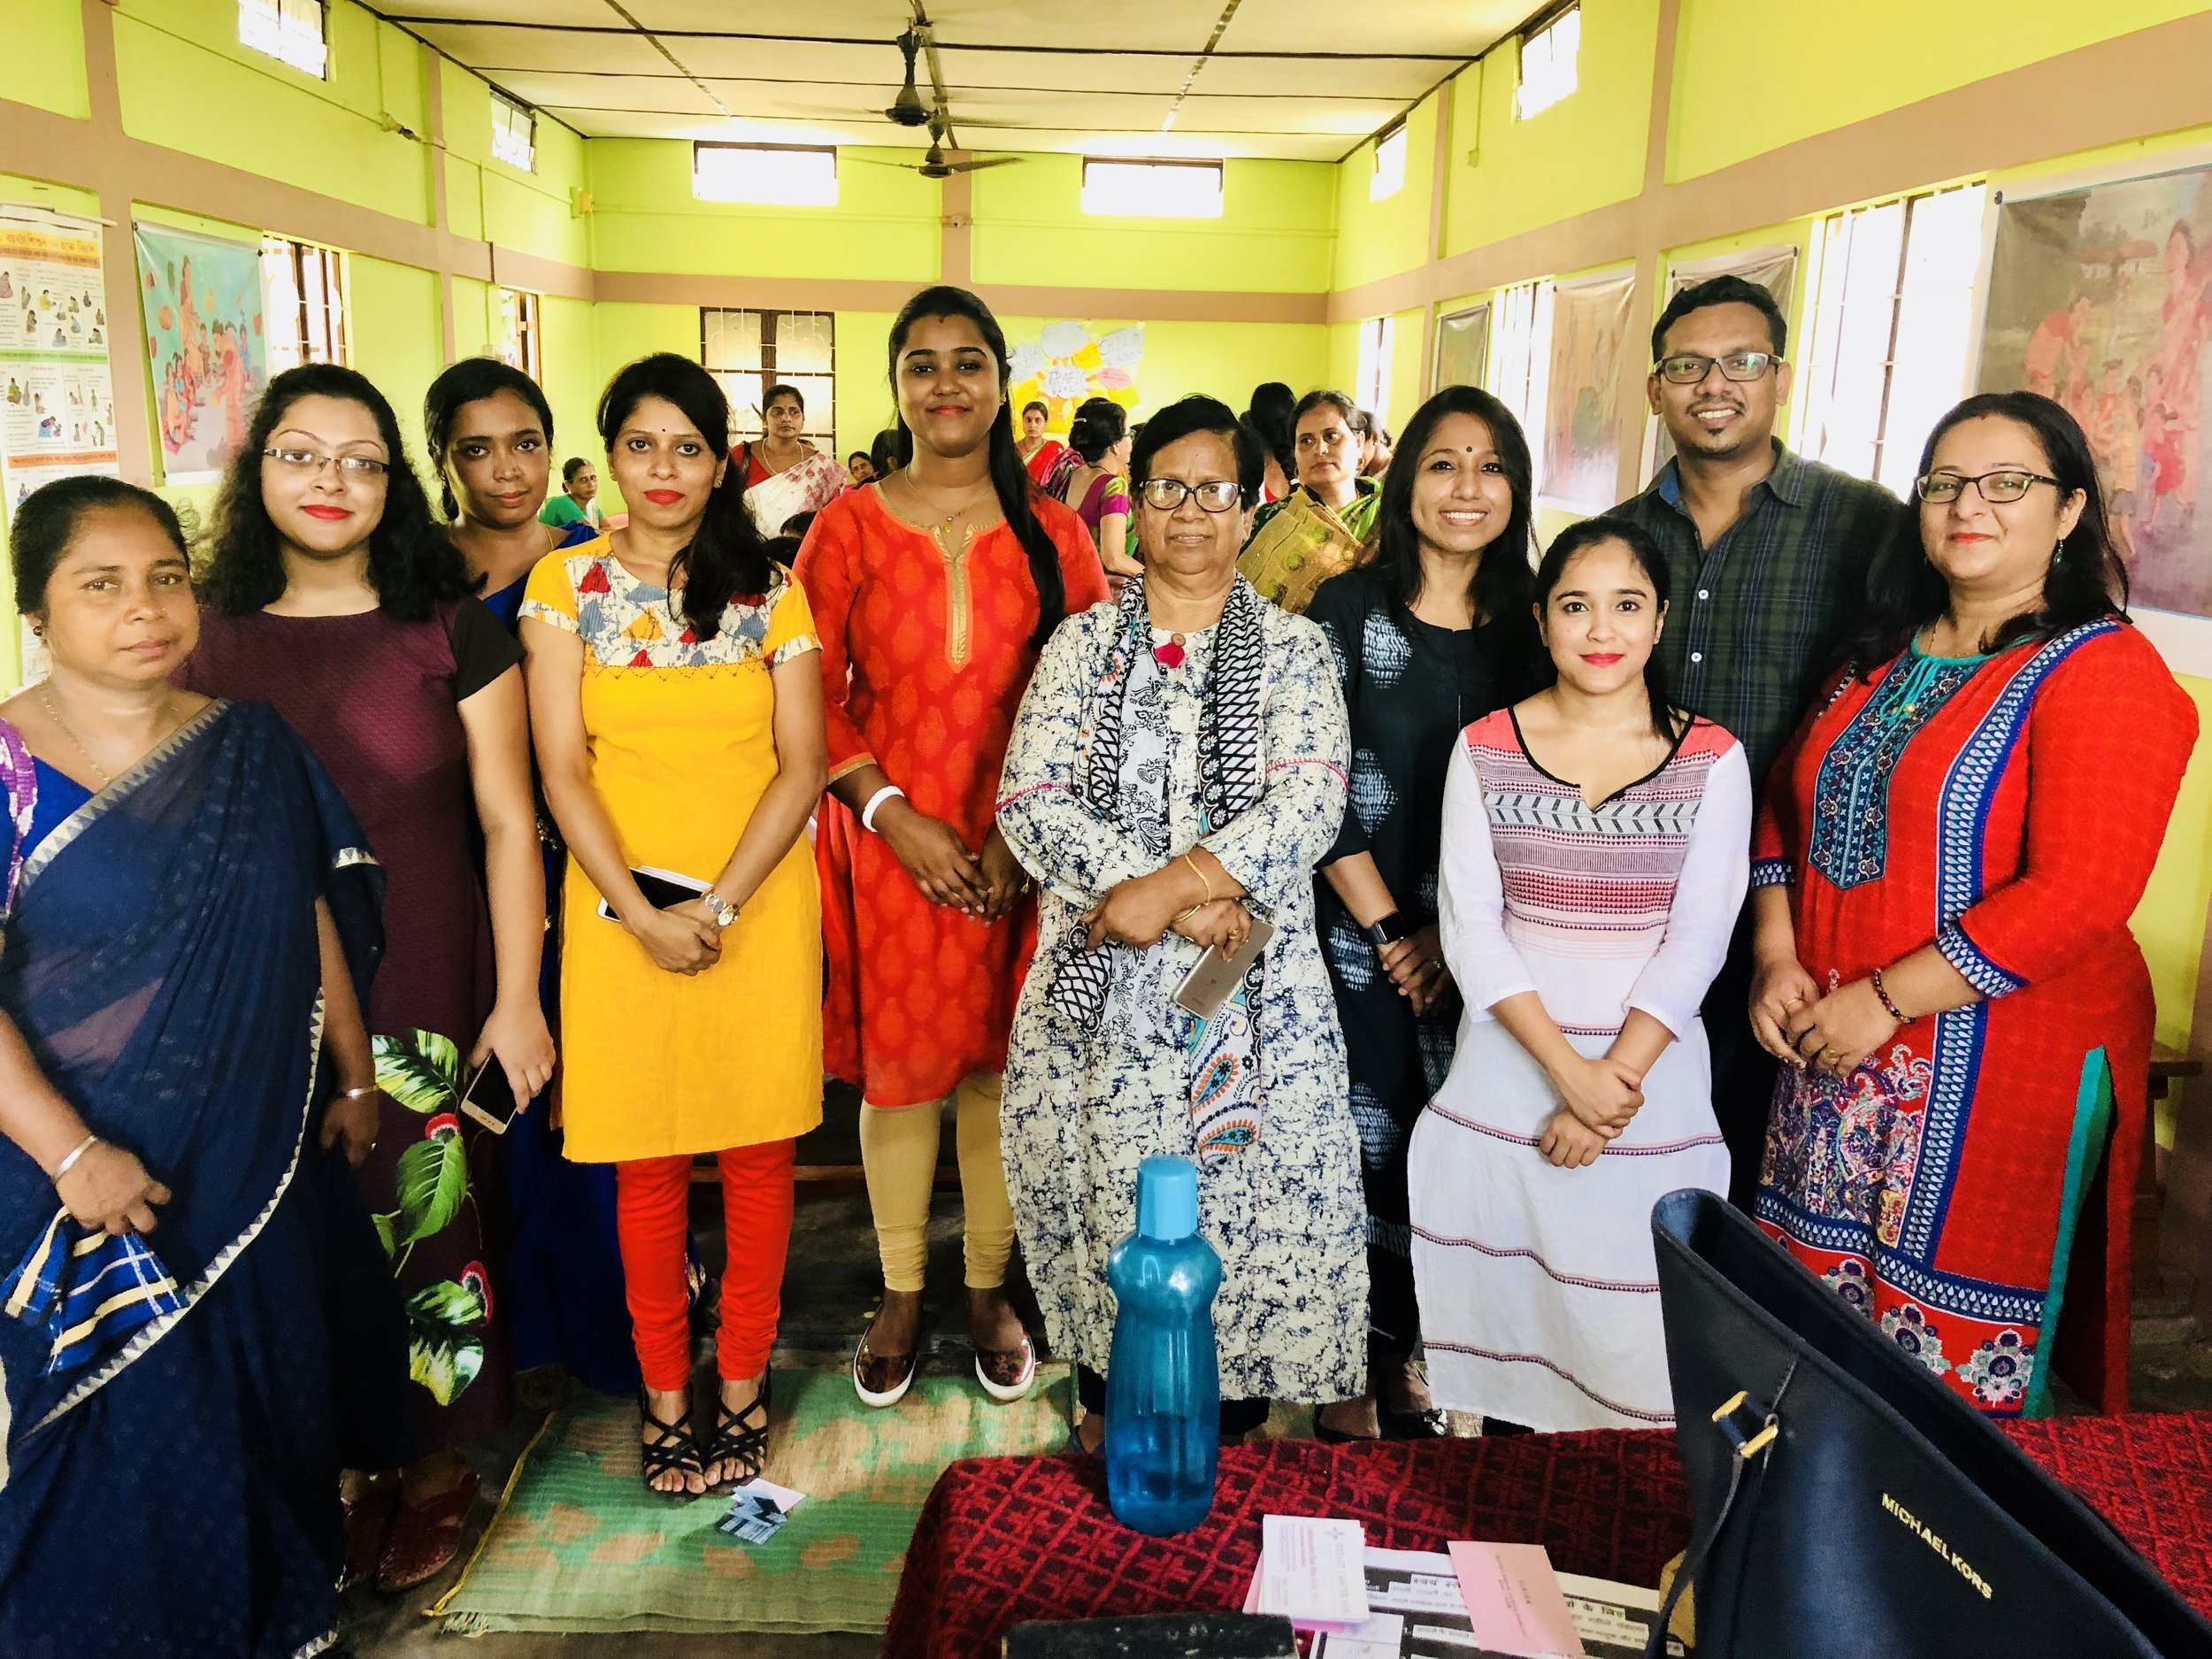 I am extremely thankful to all the members & staffs who helped in organizing the event. Without you all, the outreach would not have been possible. L to R: Sincerely grateful to Ms. Anwara Begum Laskar (helper); Ms. Sumedha Choudhury (Project Manager); Ms. Mahmuda Khanam Laskar (Worker); Ms. Urmi Biswas (Principal); Mrs. Sweety Das (Instructor); Mrs. Diba Roy (Secretary); Ms. Barsha Deb (Instructor); Mr. Subir Roy (Planning and Development Officer). Sincere thanks to Mrs. Kanchan Bhaya (Senior Process Consultant, TechnipFMC) for coming up and helping during the event